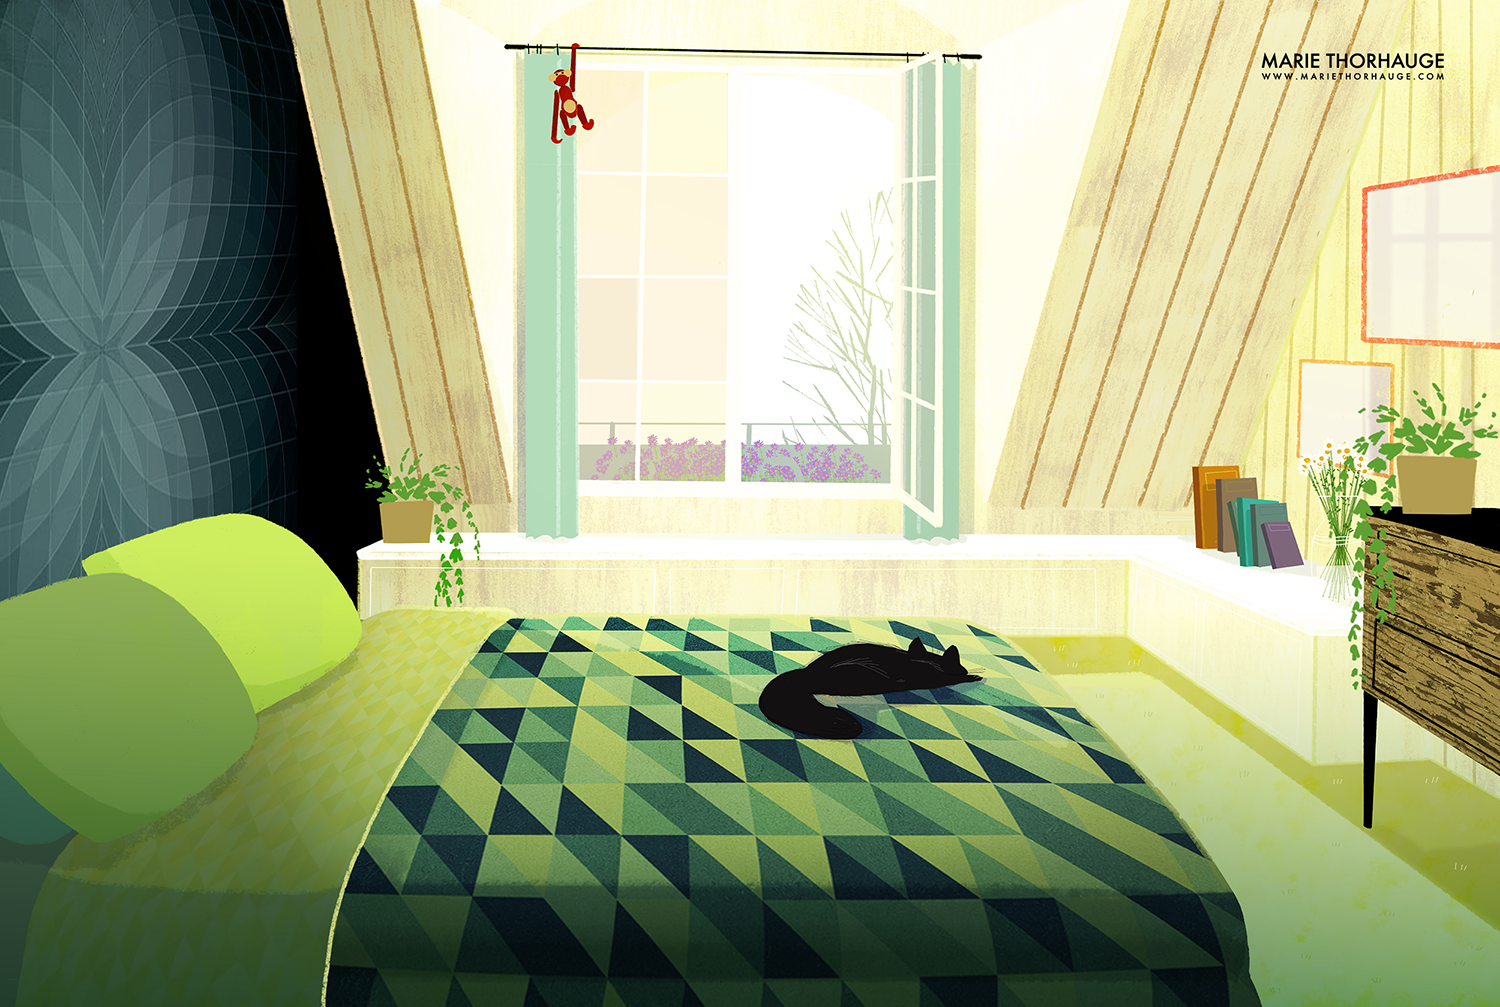 2013_Marie-Thorhauge_bedroom-day.png